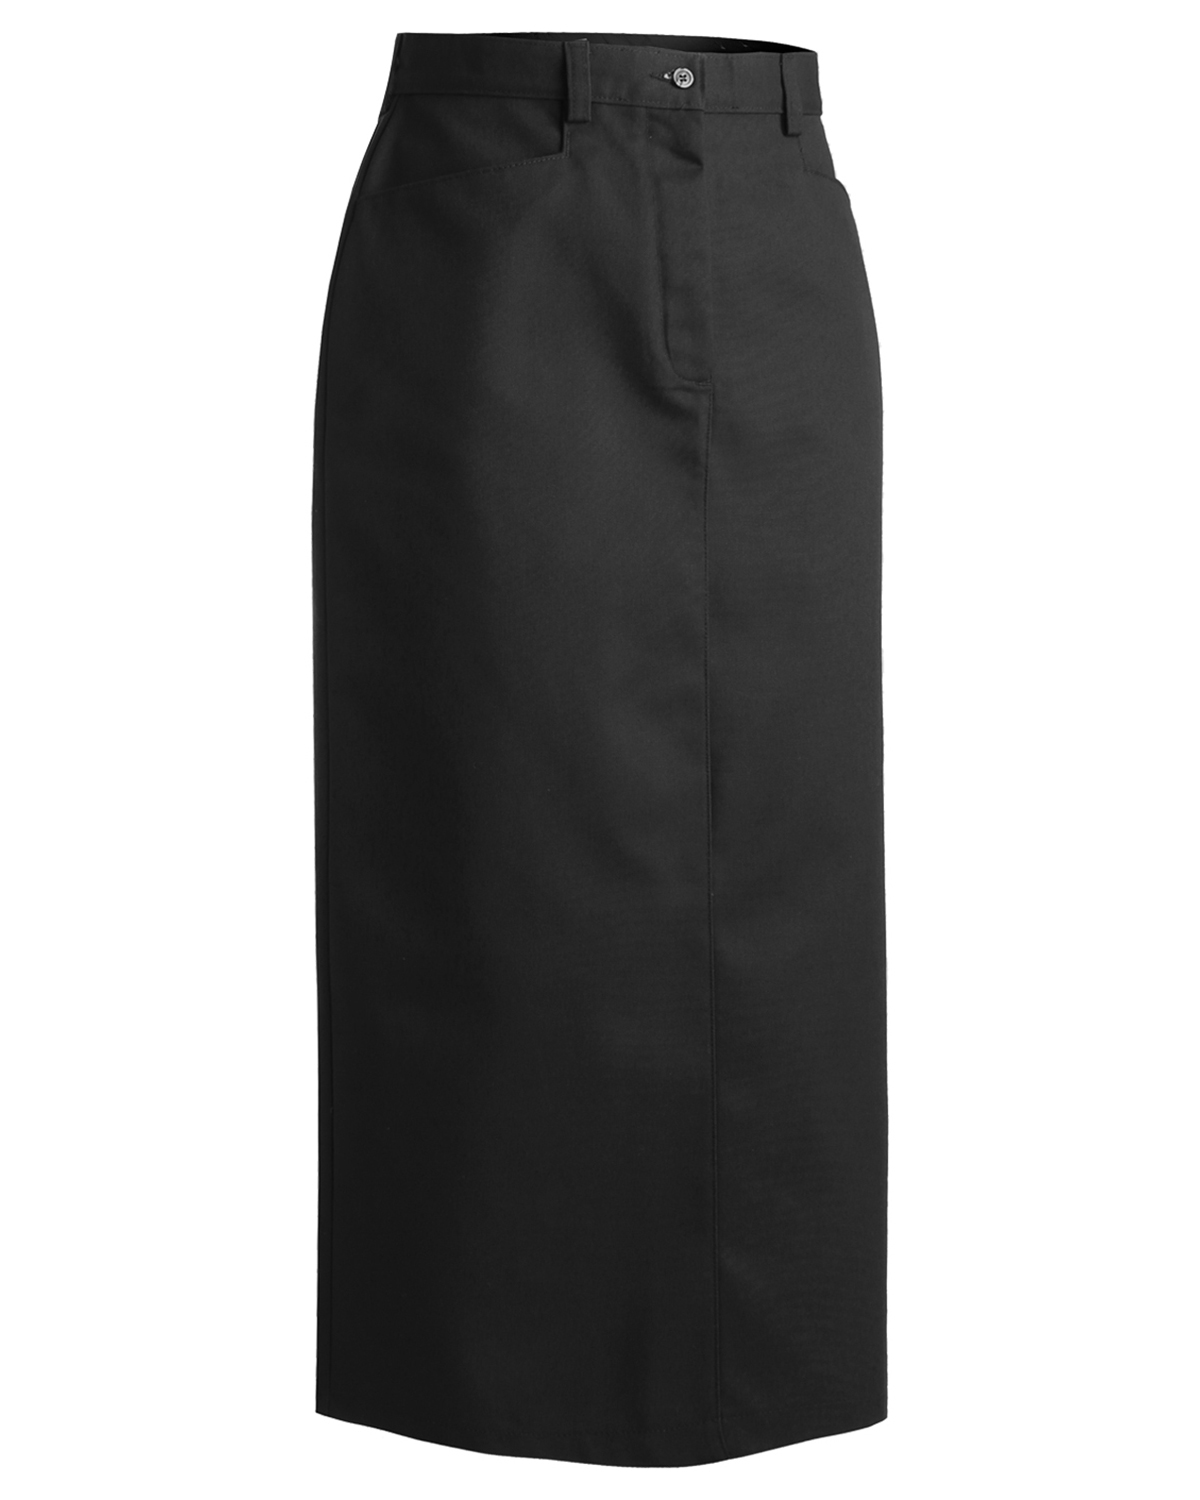 Edwards 9779 Women's Casual Chino Long Skirt at GotApparel